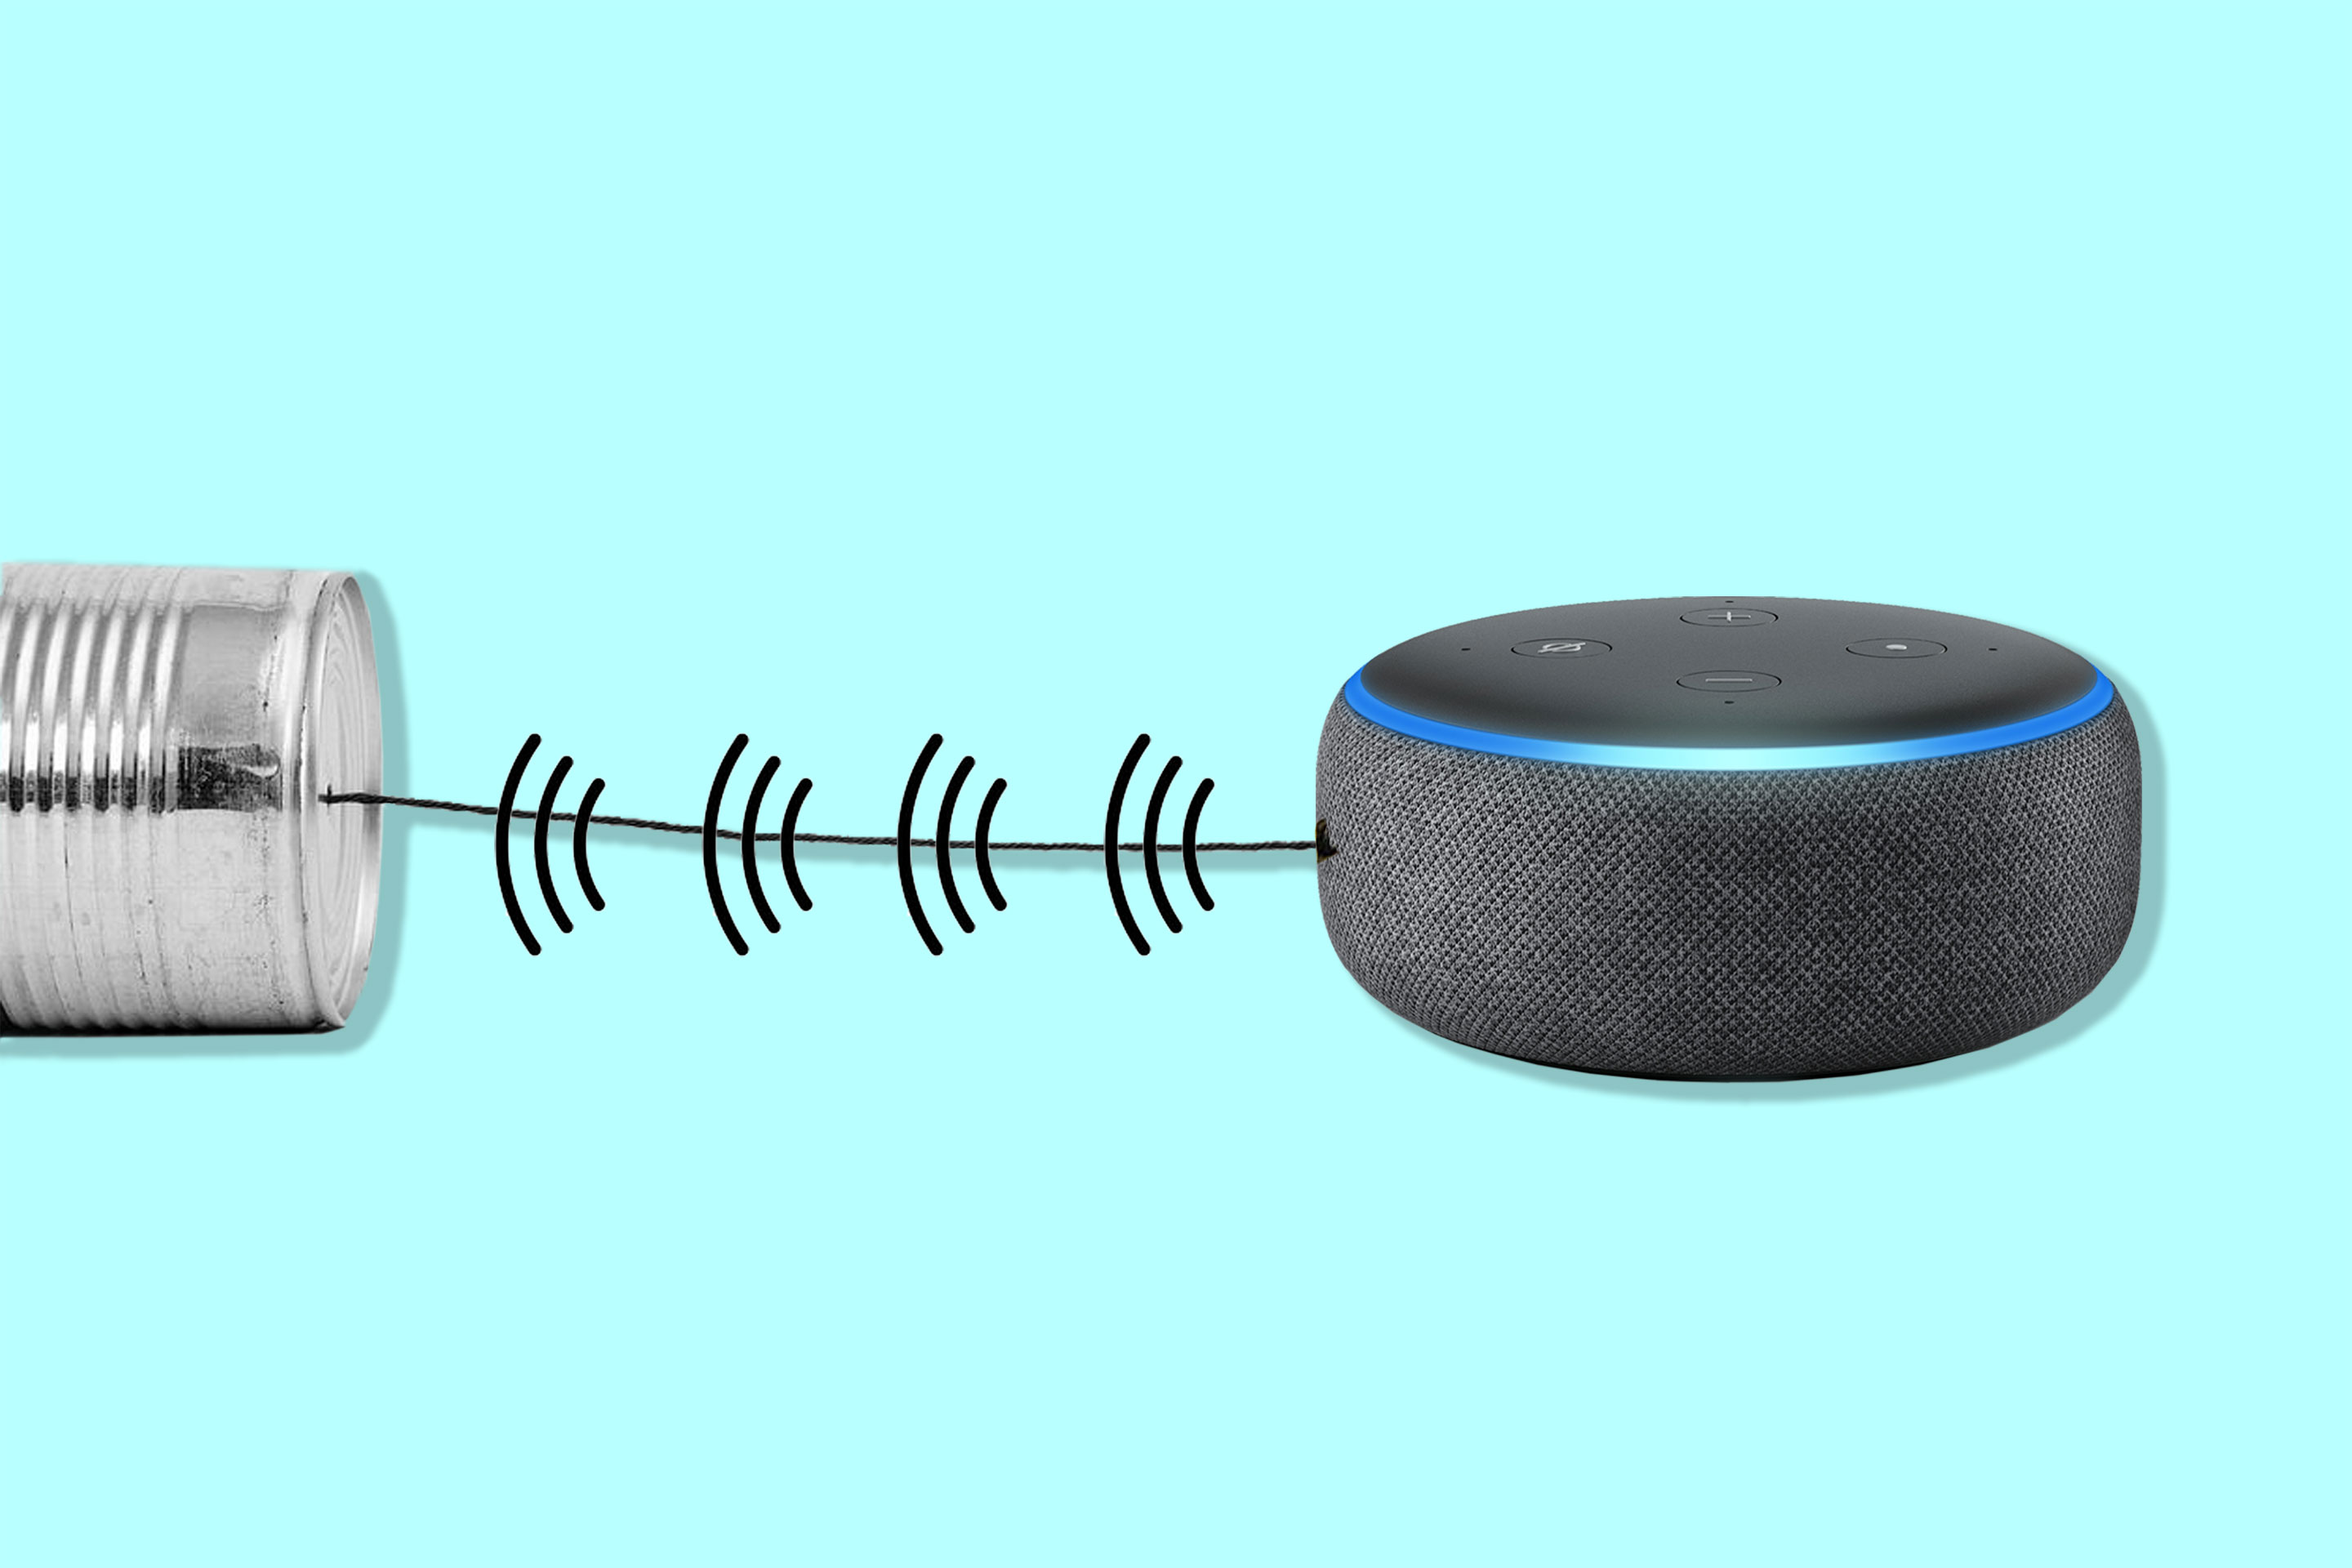 amazon-alexa-listening-ai